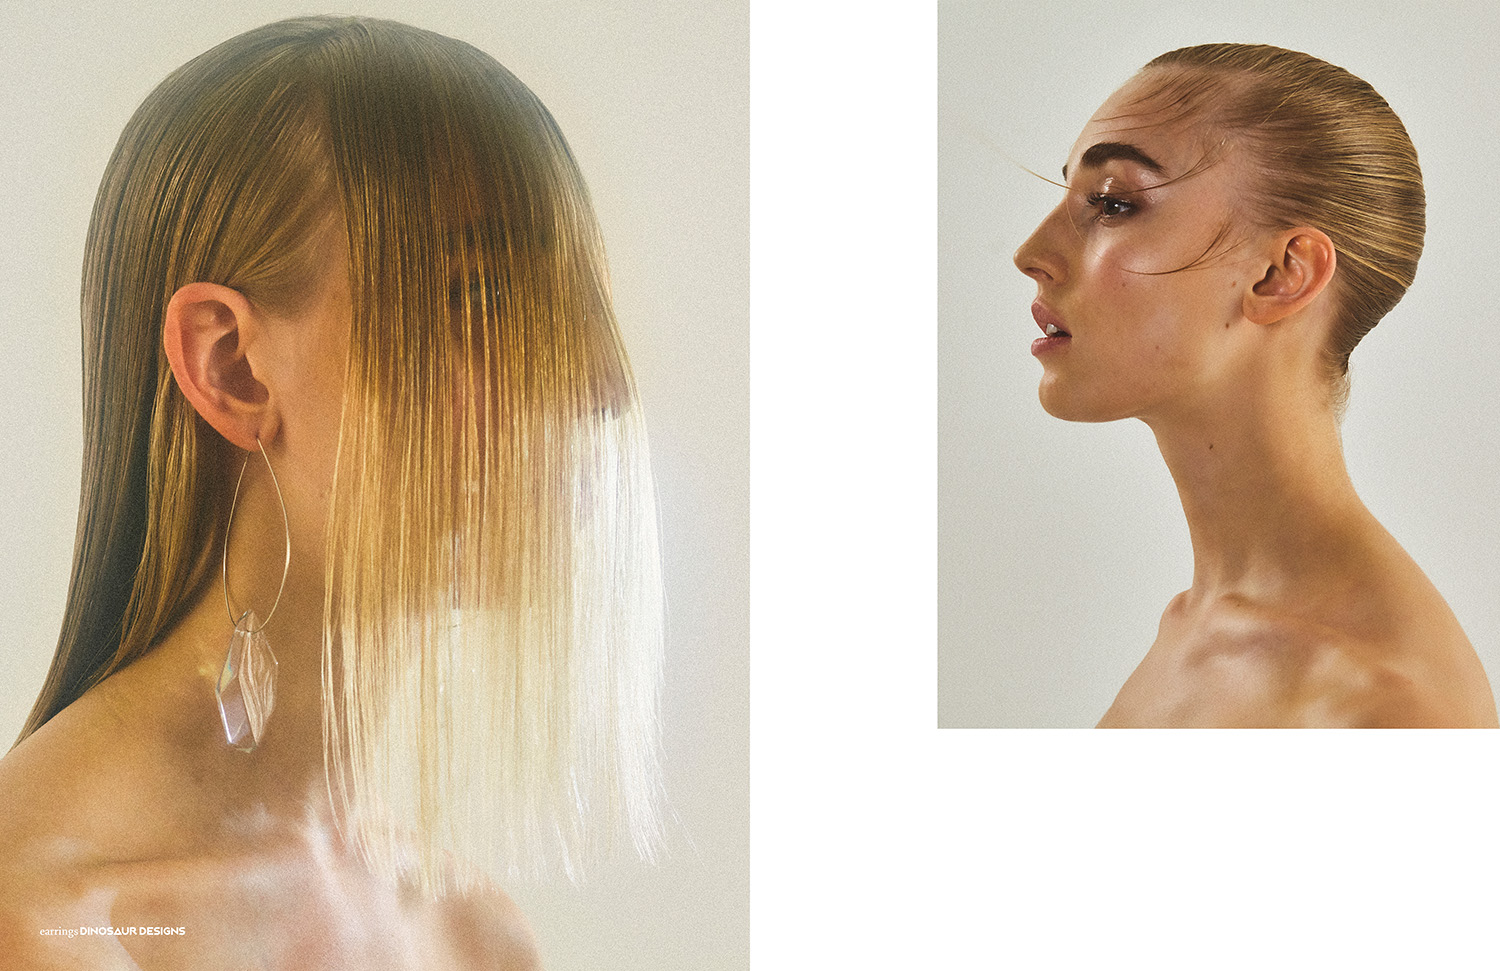 This PIBE online exclusive has been produced by:  Photography / Nathan Jenkins Styling / Tasha Arguile Hair / Ryuta Saiga using Bumble and Bumble Make up / Riona O'Sullivan using Glossier Models / Ava Hilmars @Premier, Josie Lane @IMG